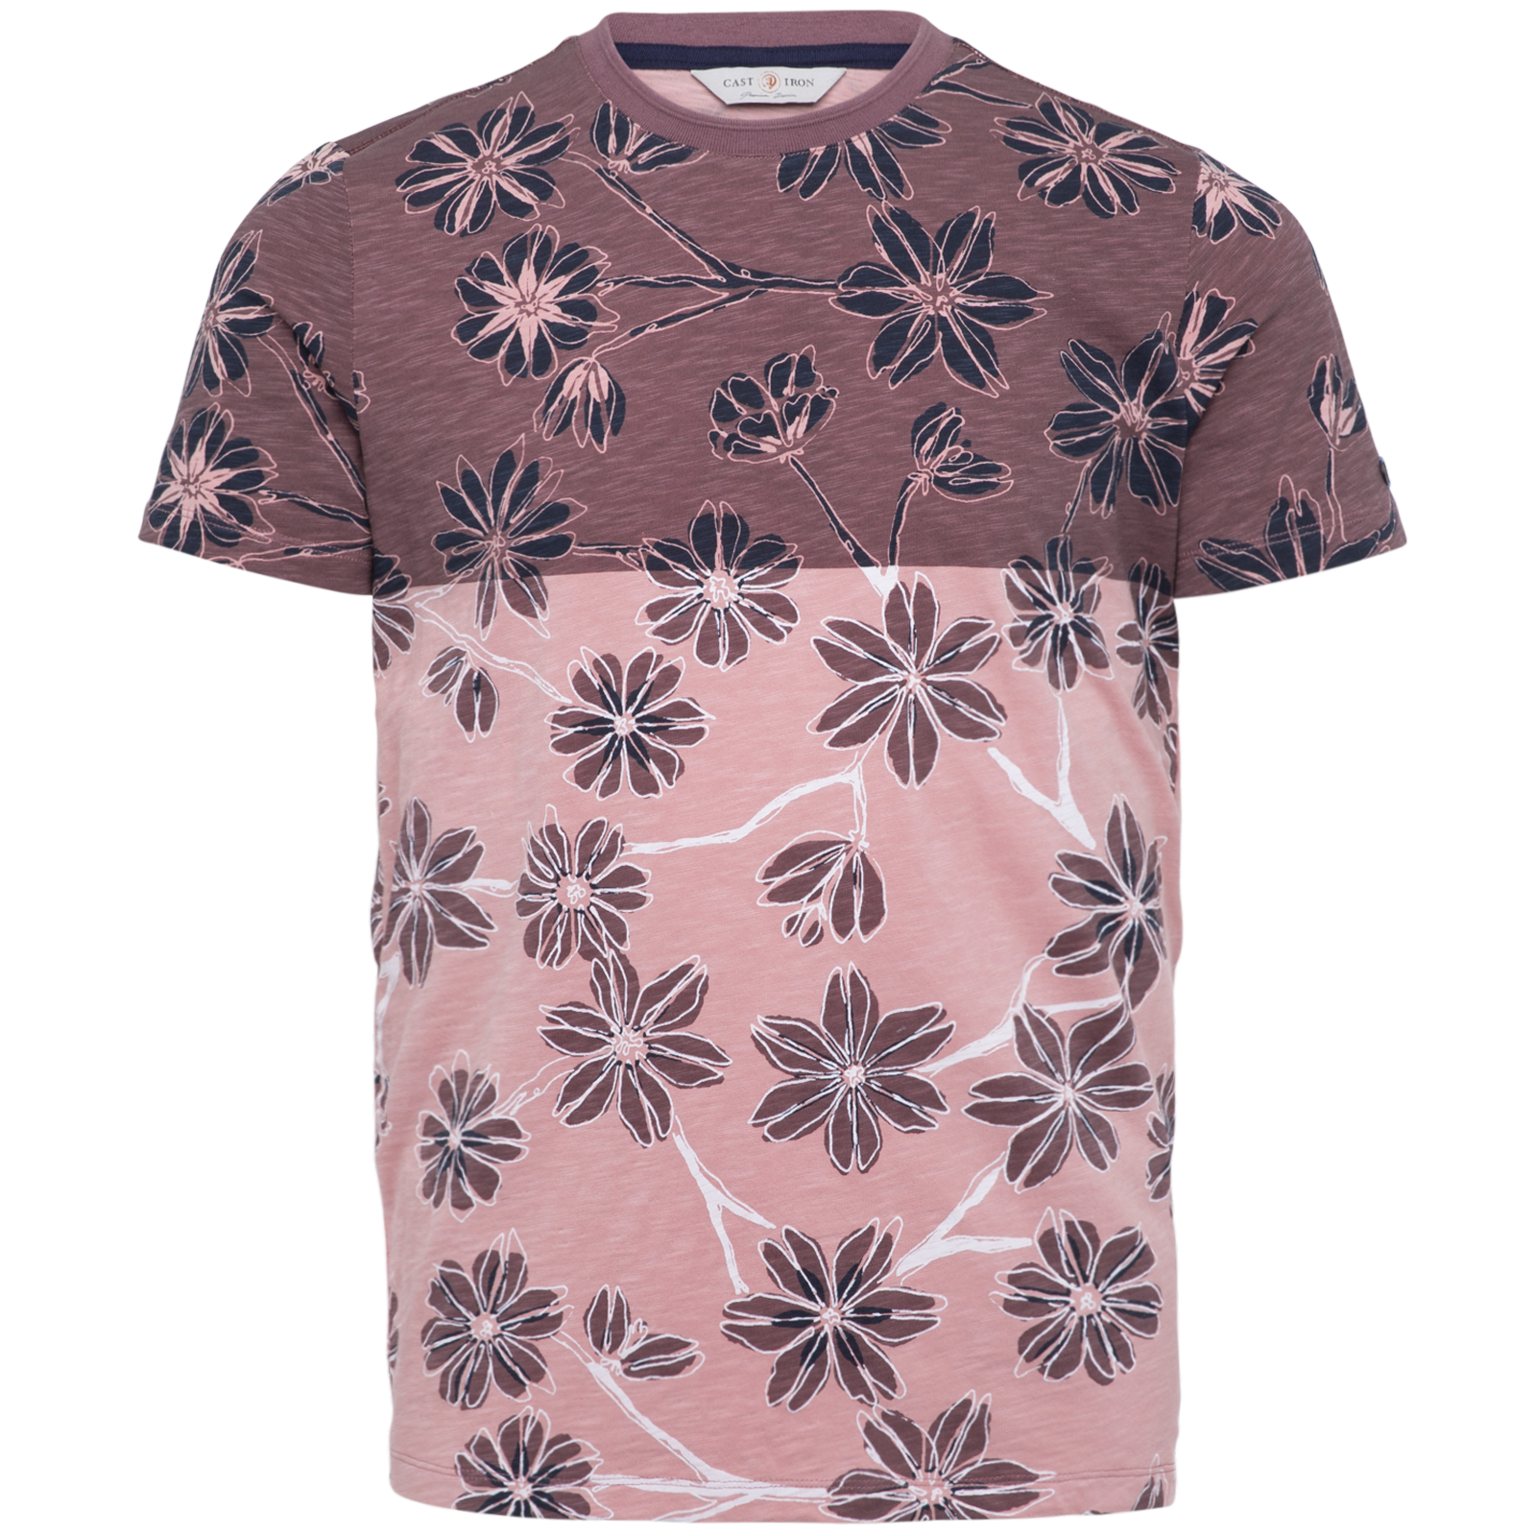 T SHIRT MANCHES COURTES COL ROND-1